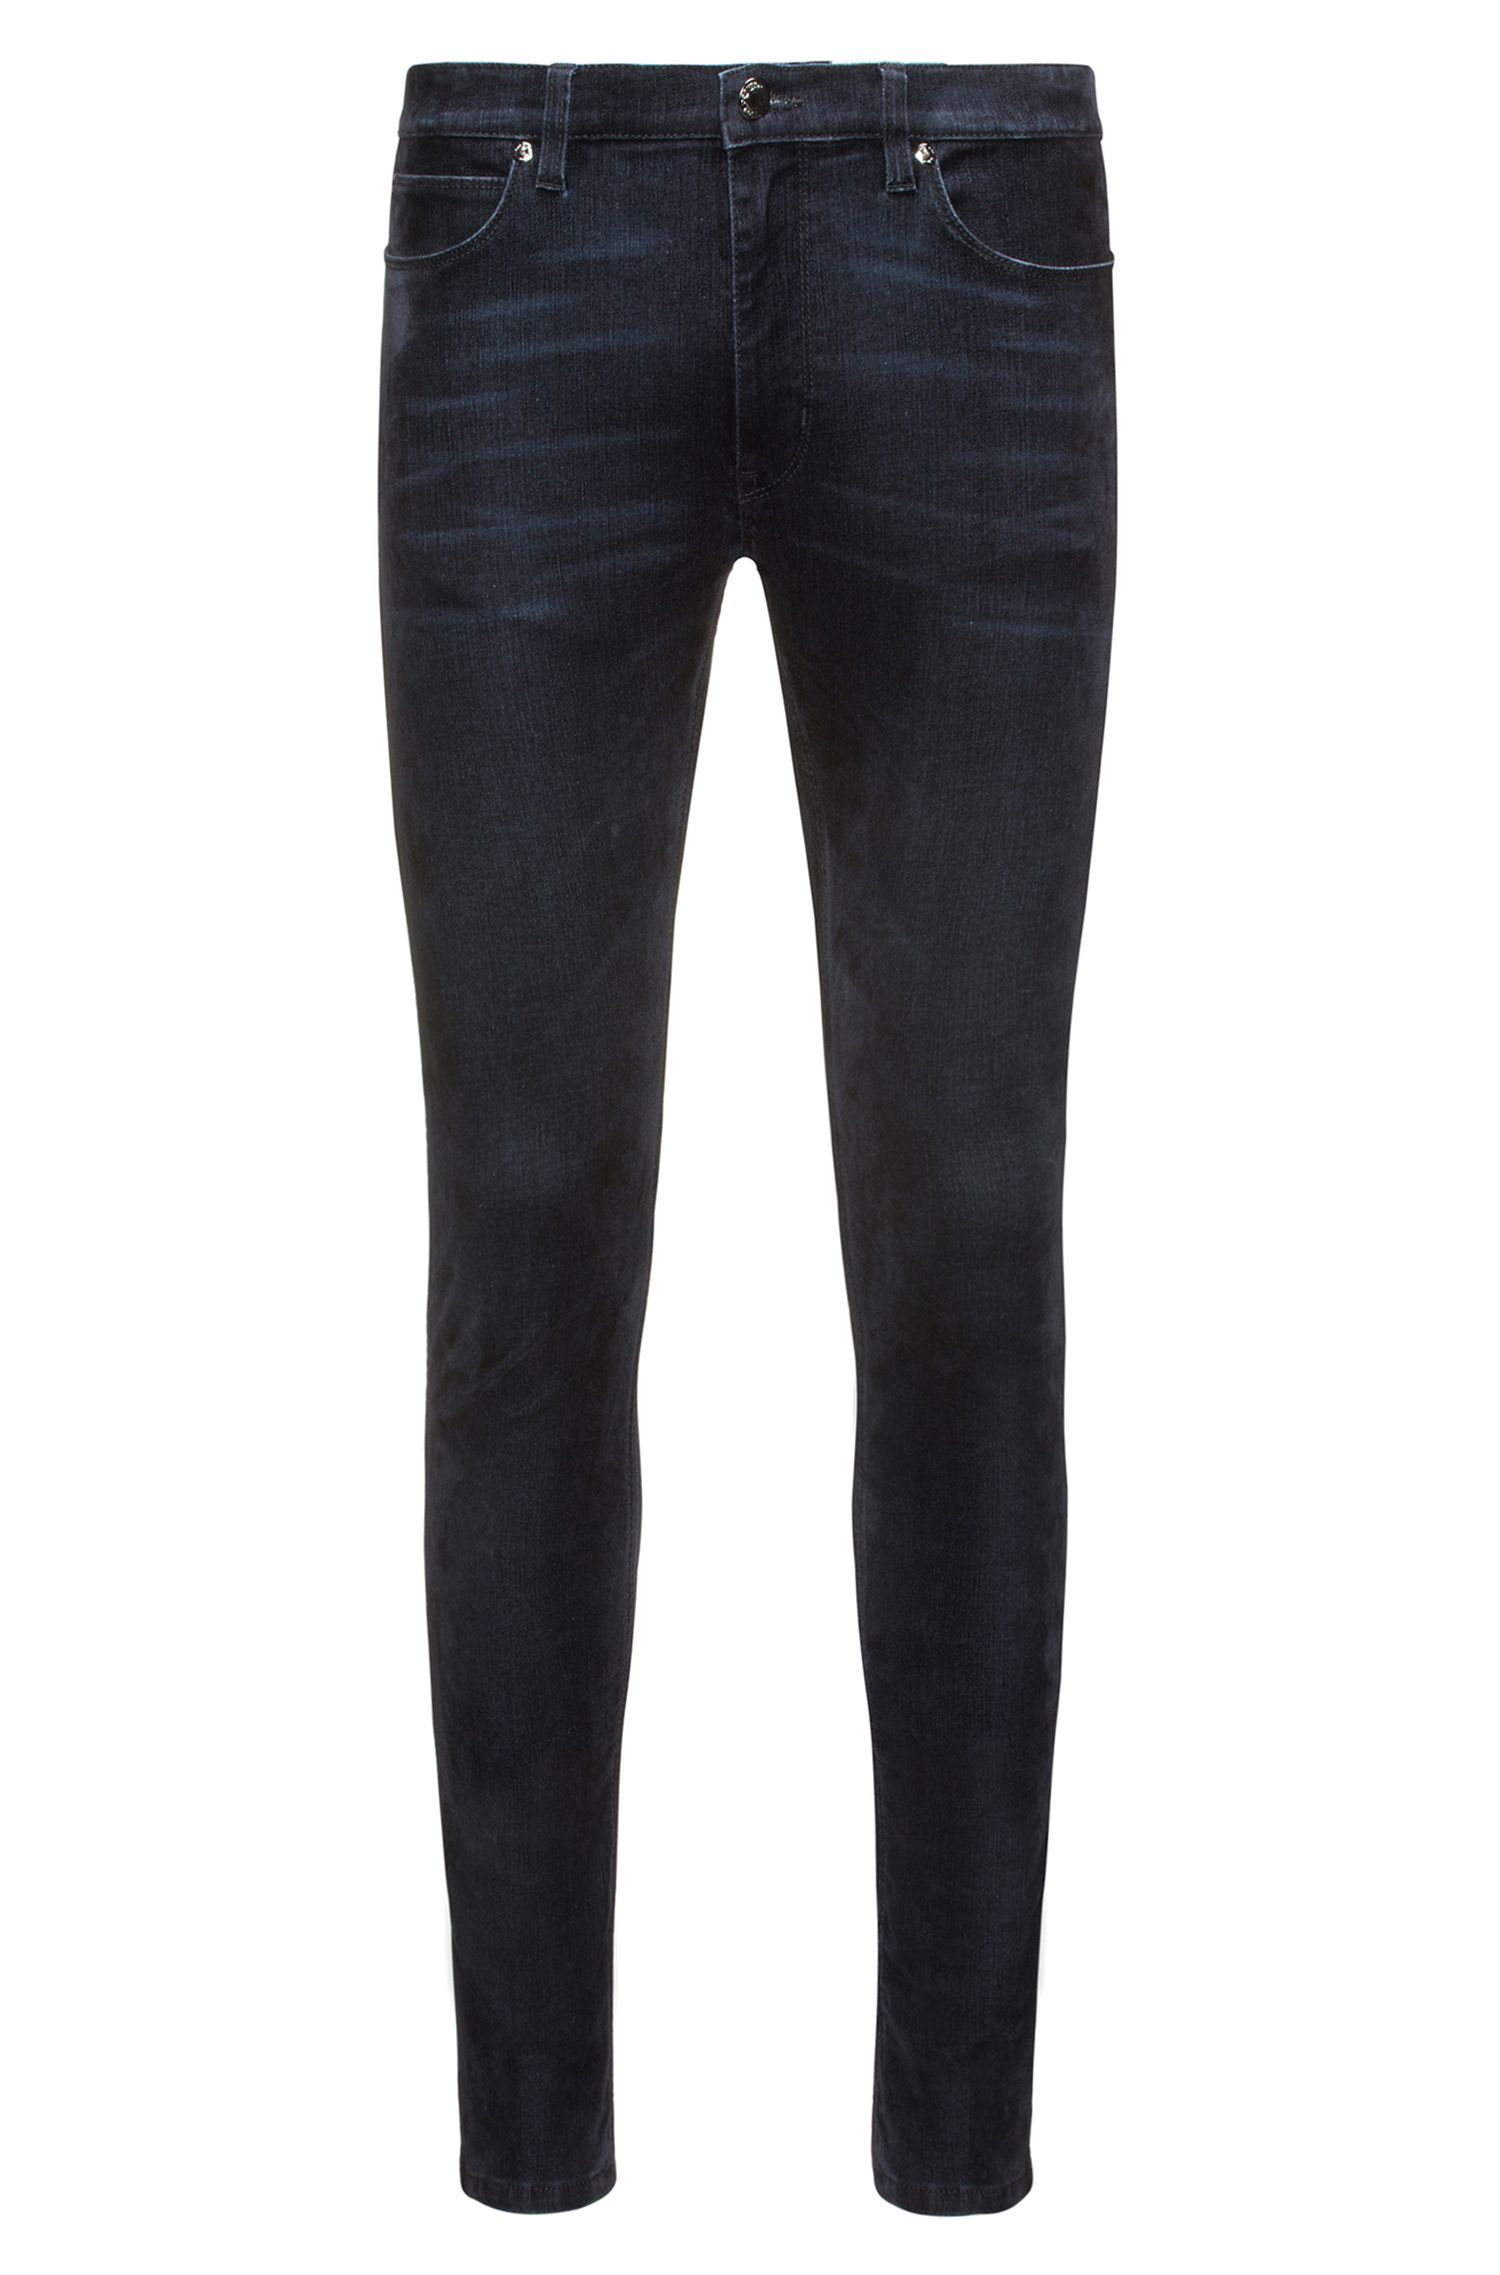 Skinny-Fit Jeans aus Stretch-Denim mit Flockdruck